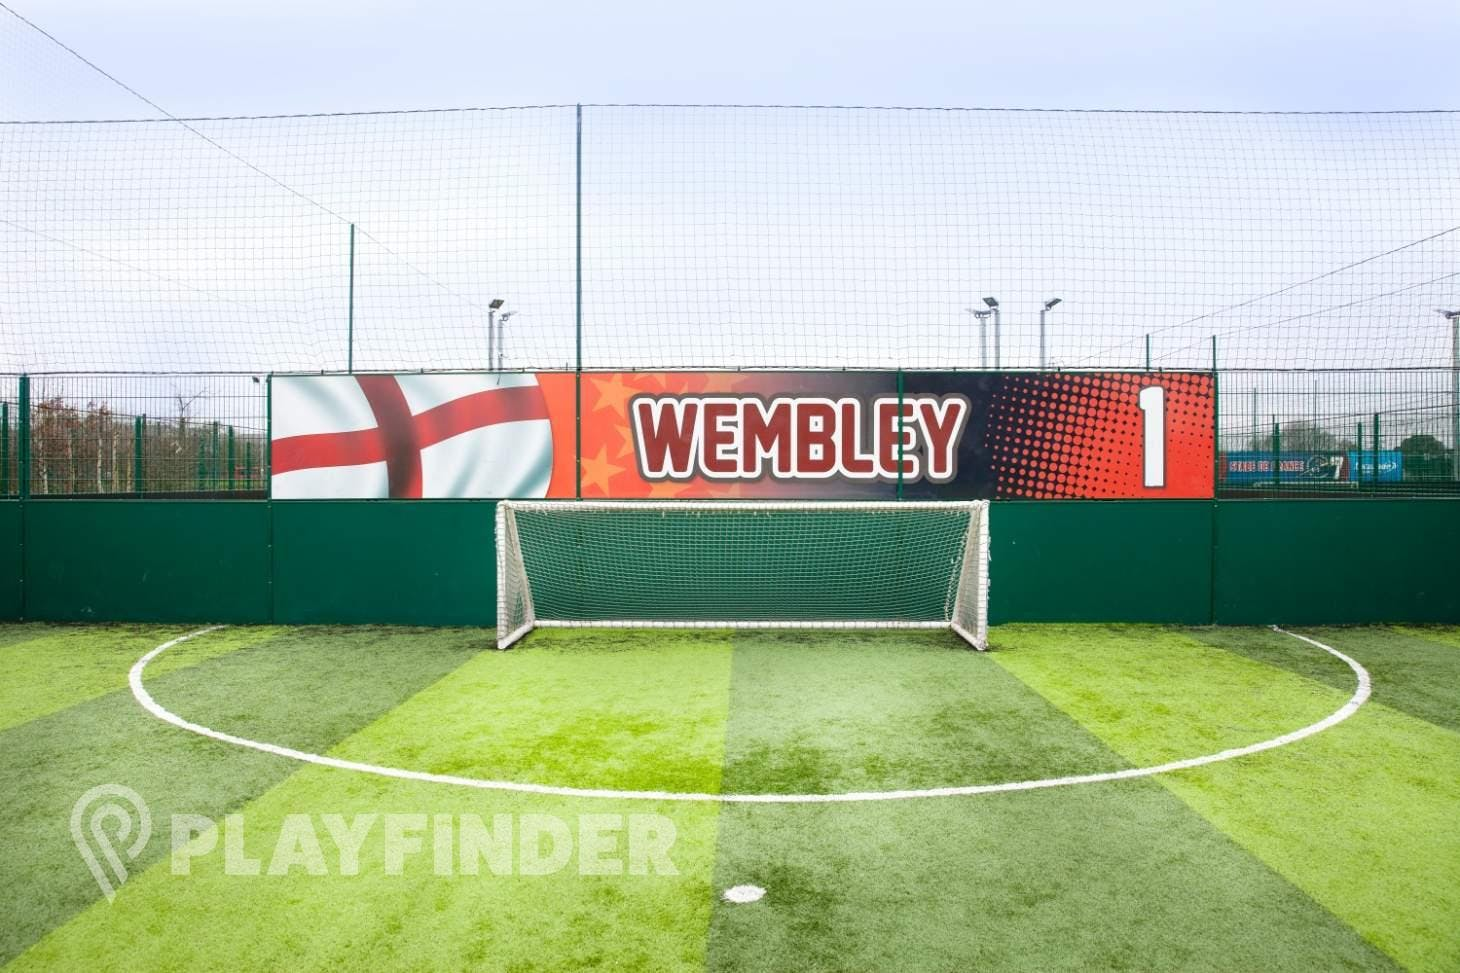 Goals Black Country 5 a side | 3G Astroturf football pitch